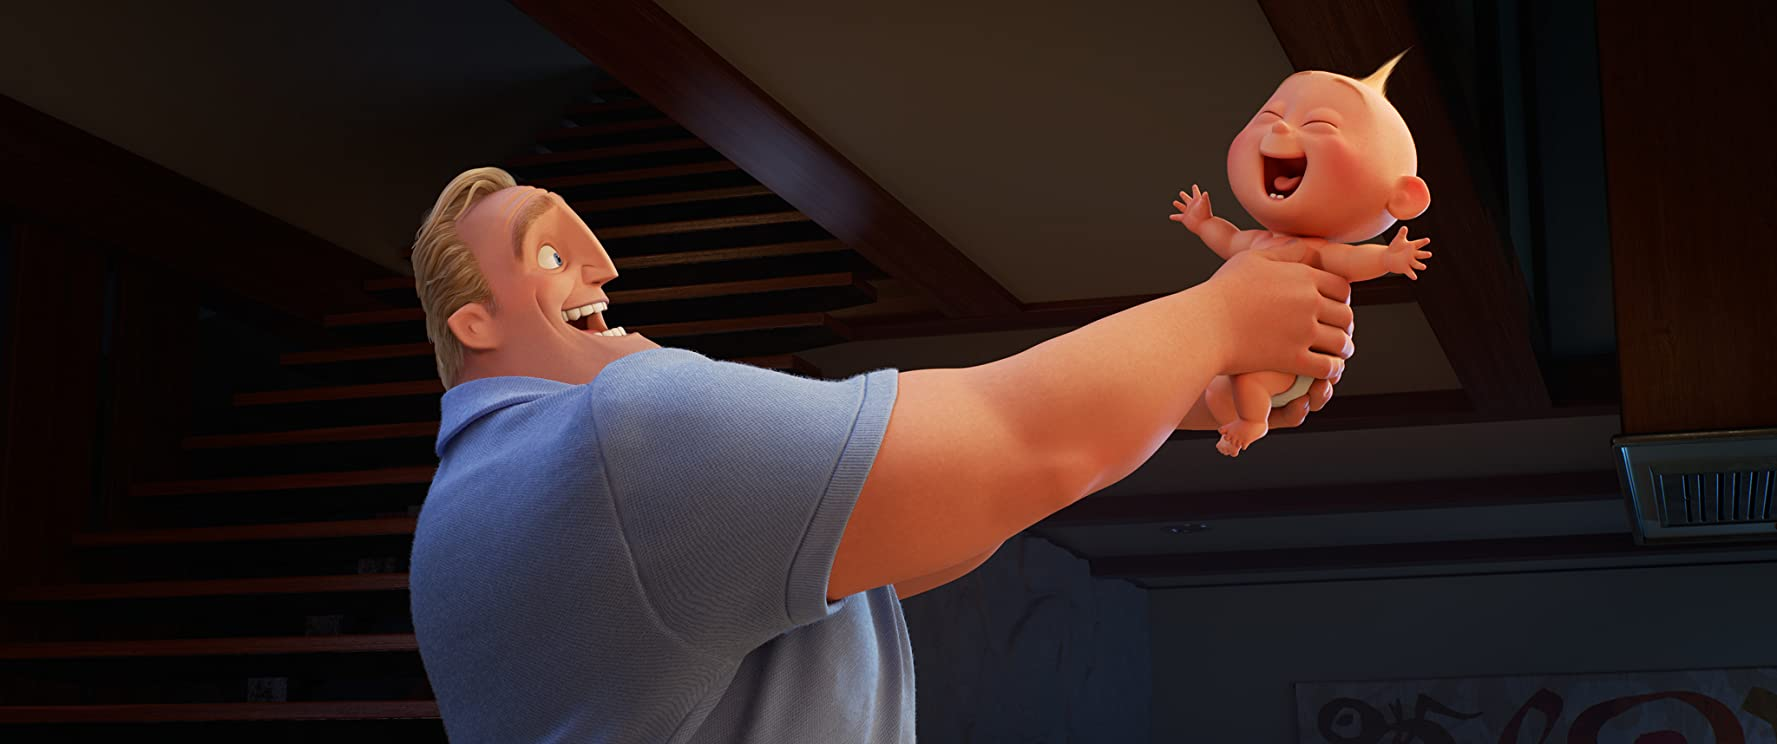 Craig T. Nelson in Incredibles 2 (2018)